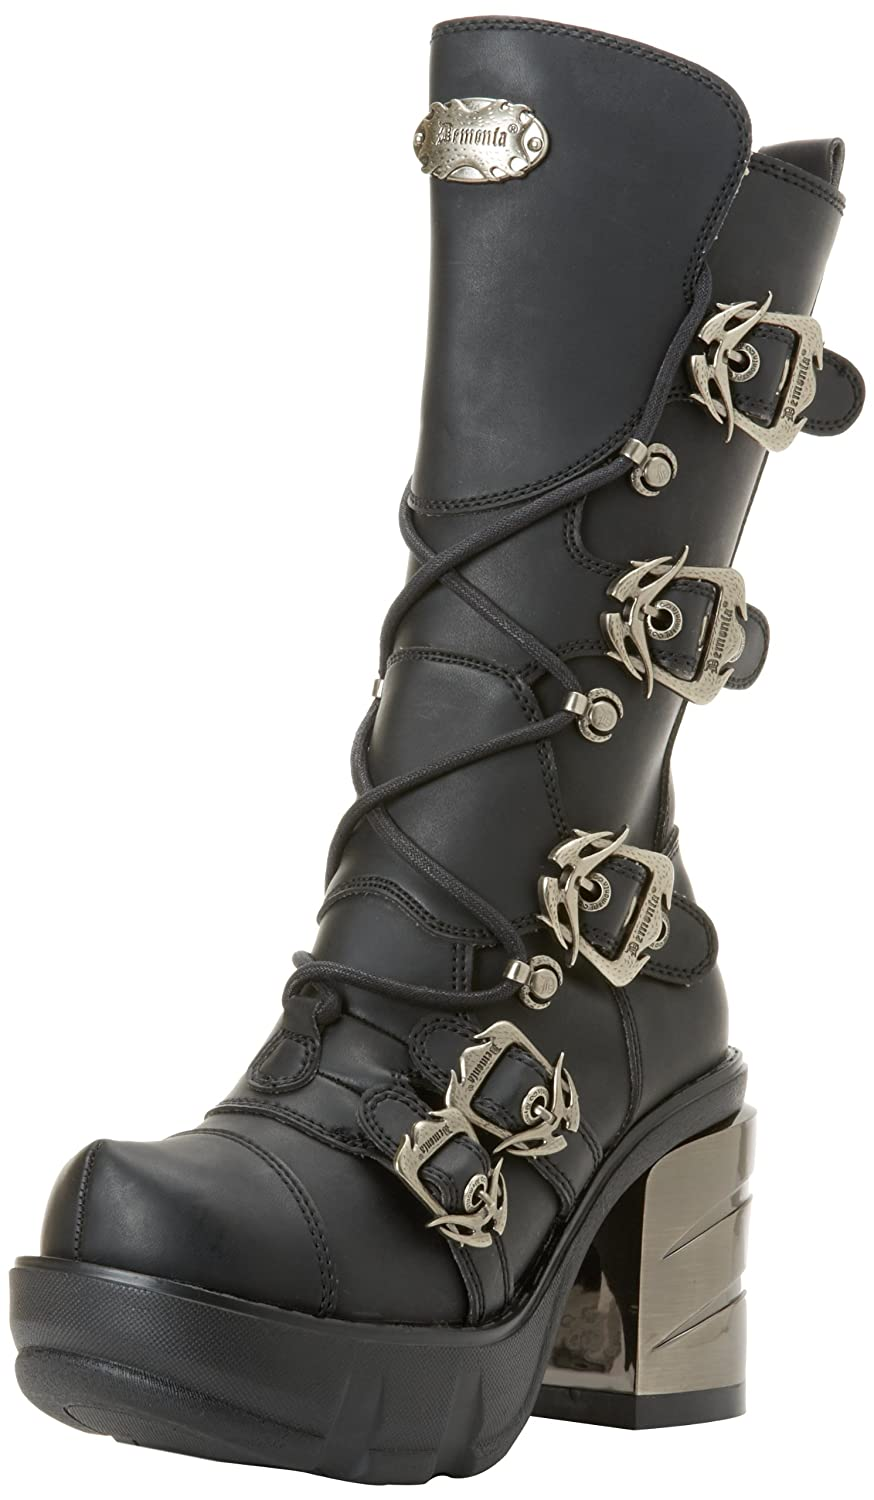 Pleaser Women's Sinister 203 B Ankle US|Black Boot B008QD78HG 8 B(M) US|Black Ankle Polyurethane 5b4744